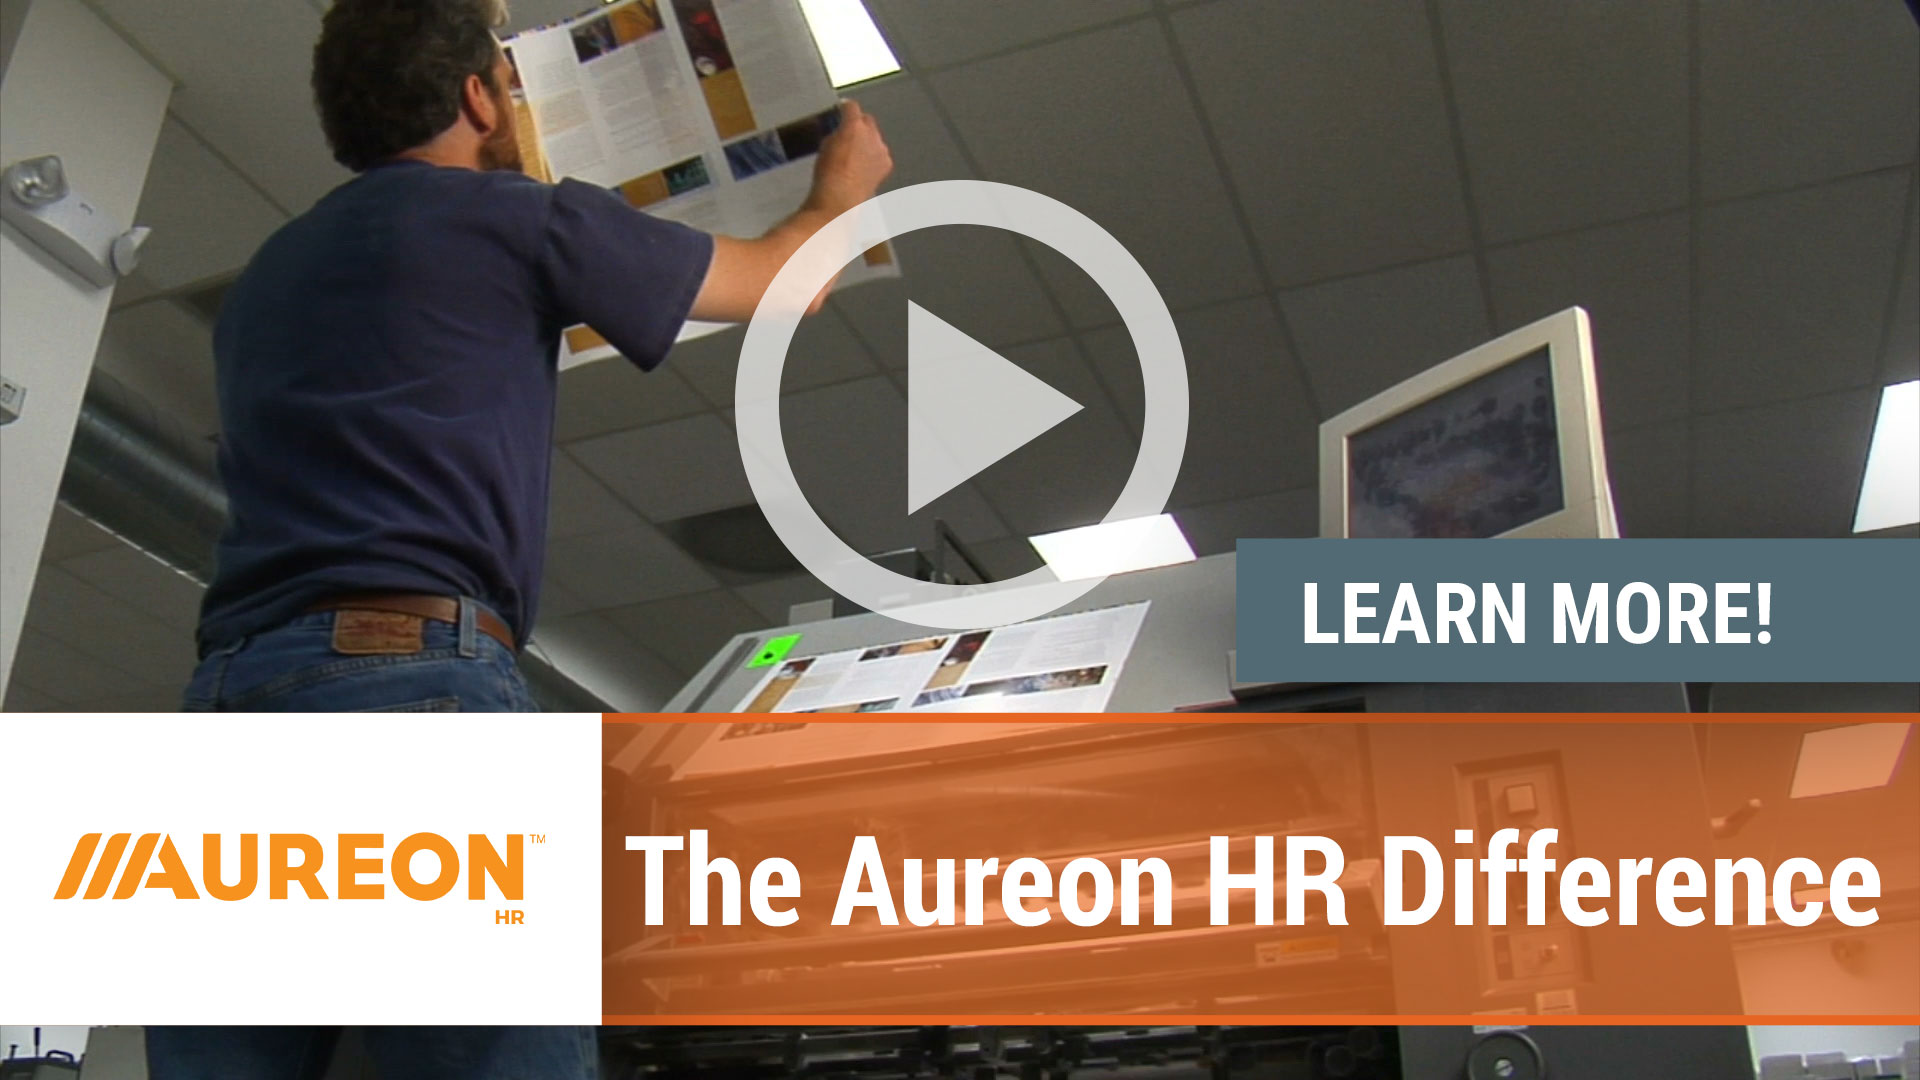 The Aureon Difference - Video for Aureon Staffing hosted by Digi-Me